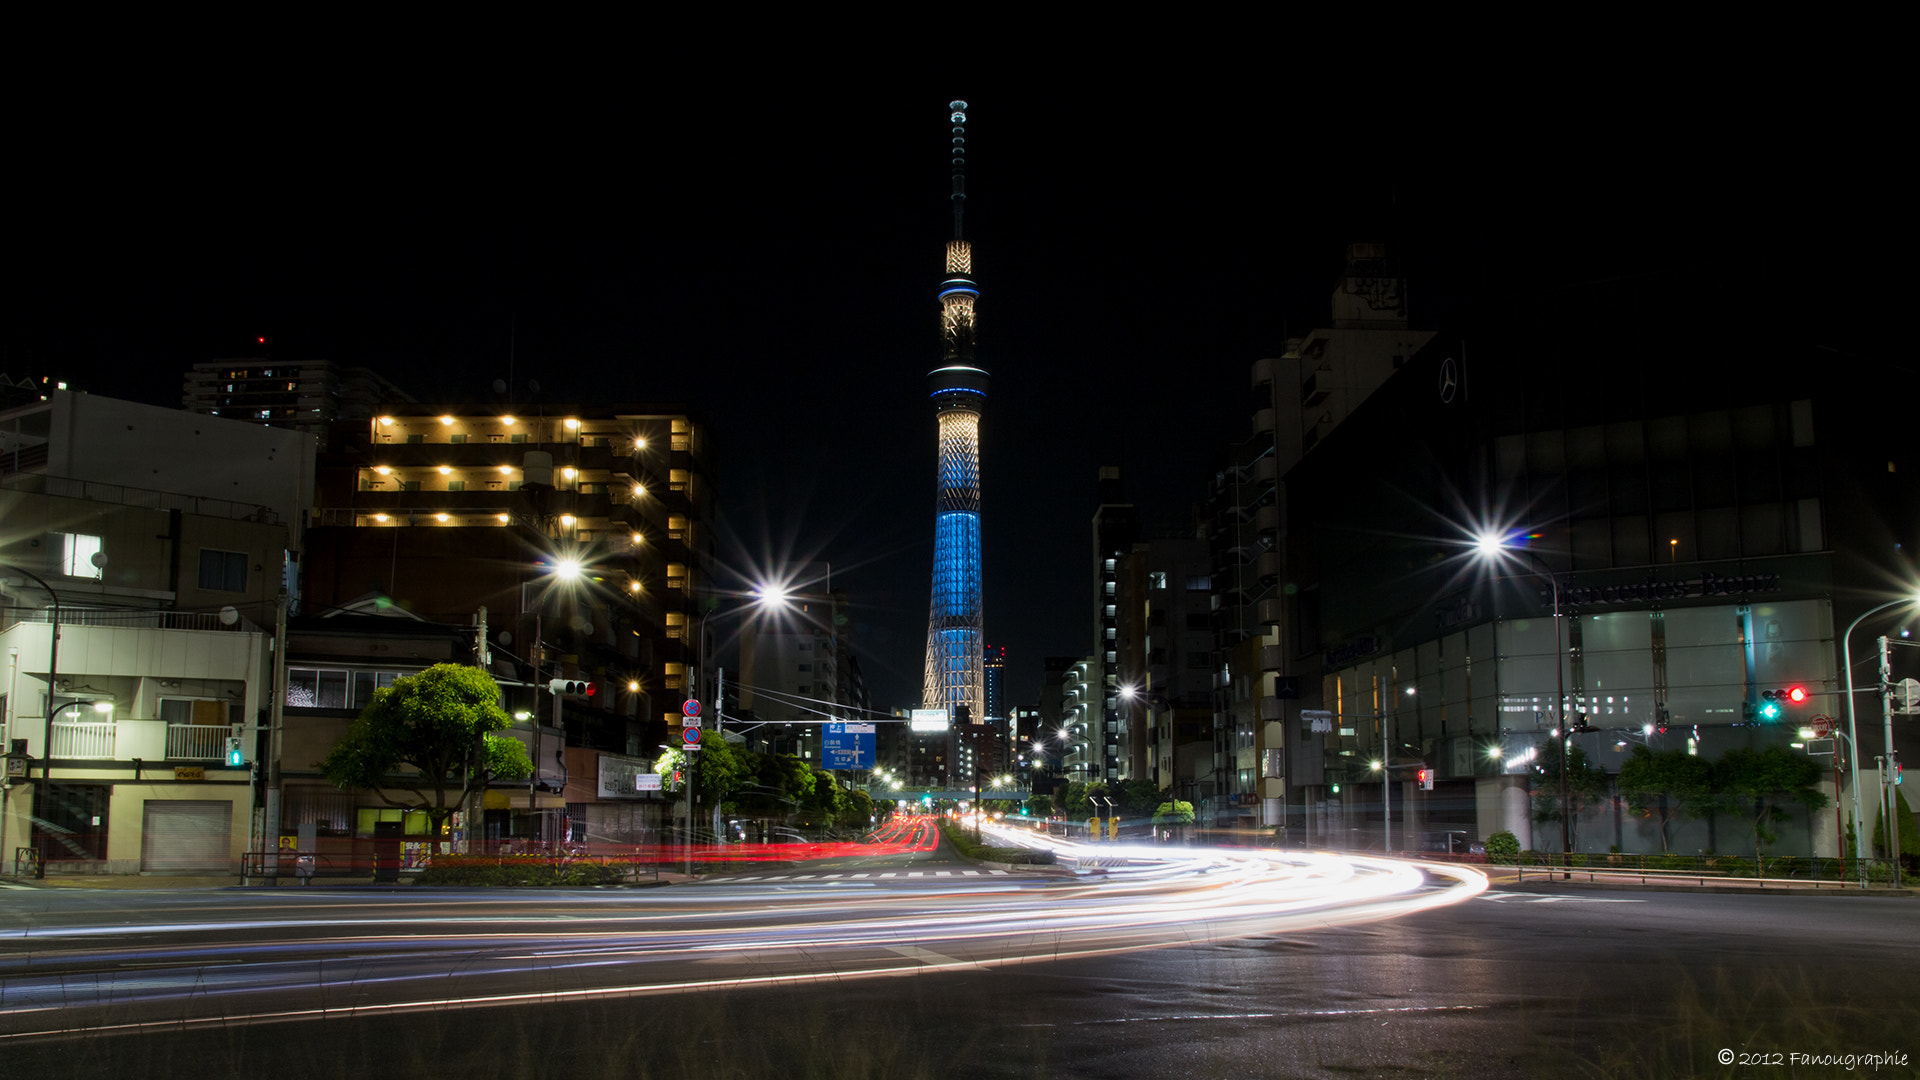 Photograph Sky Tree by Fanougraphie * on 500px